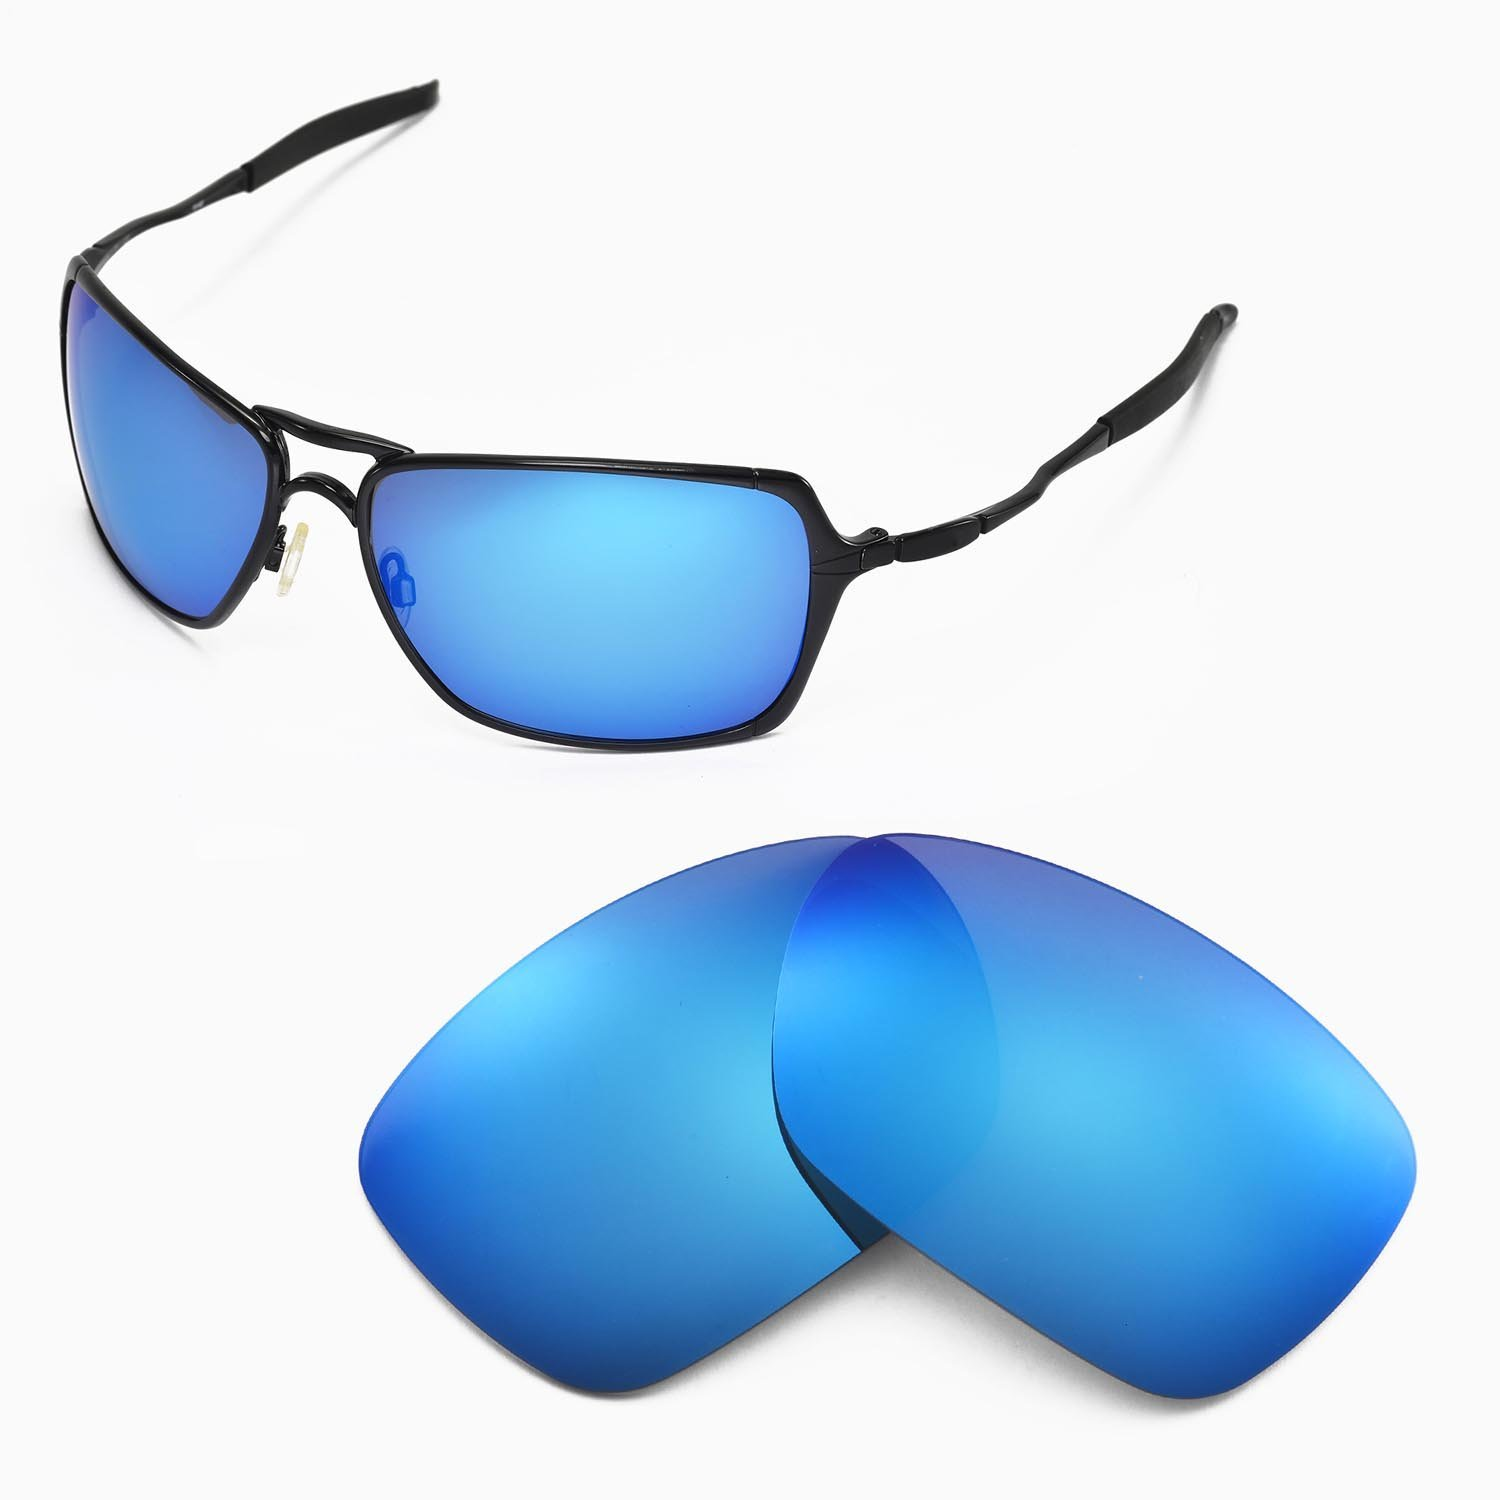 Amazon.com : Walleva Replacement Lenses for Oakley Inmate Sunglasses - Multiple Options Available (Ice Blue Coated - Polarized) : Sports Fan Shot Glasses